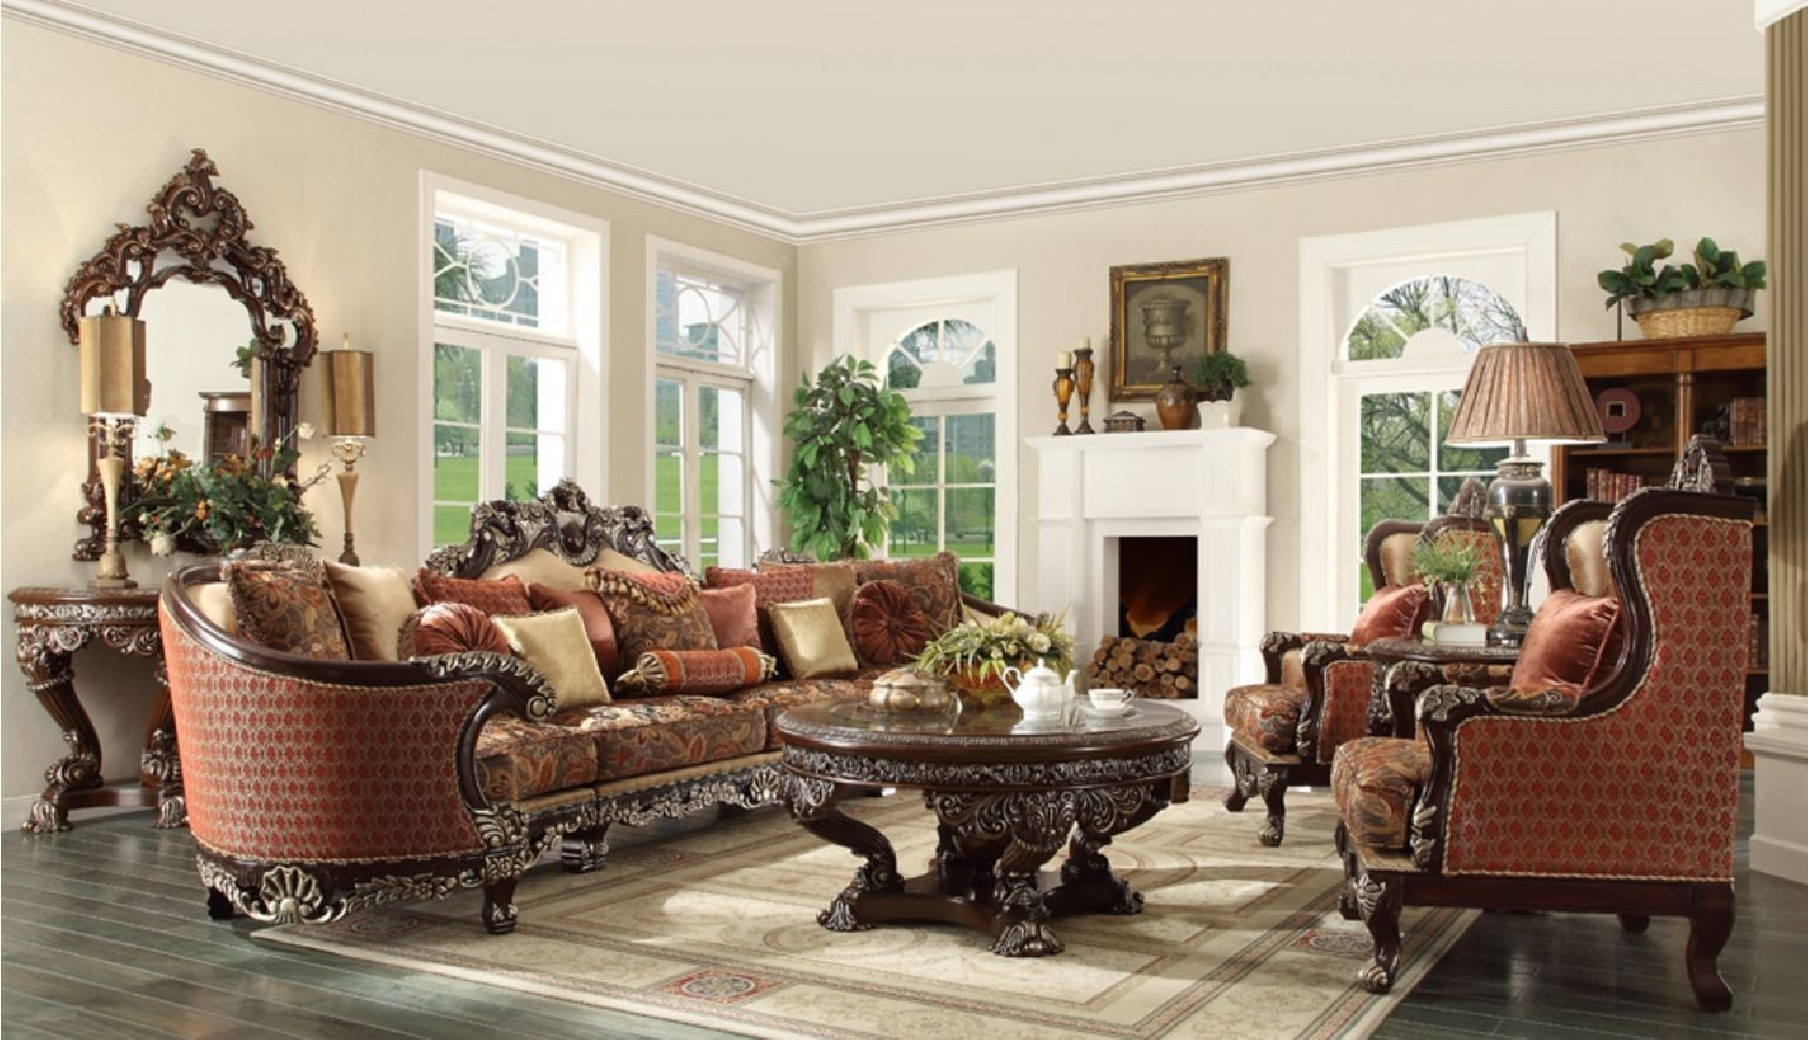 hd 111 homey design upholstery living room set victorian. Black Bedroom Furniture Sets. Home Design Ideas